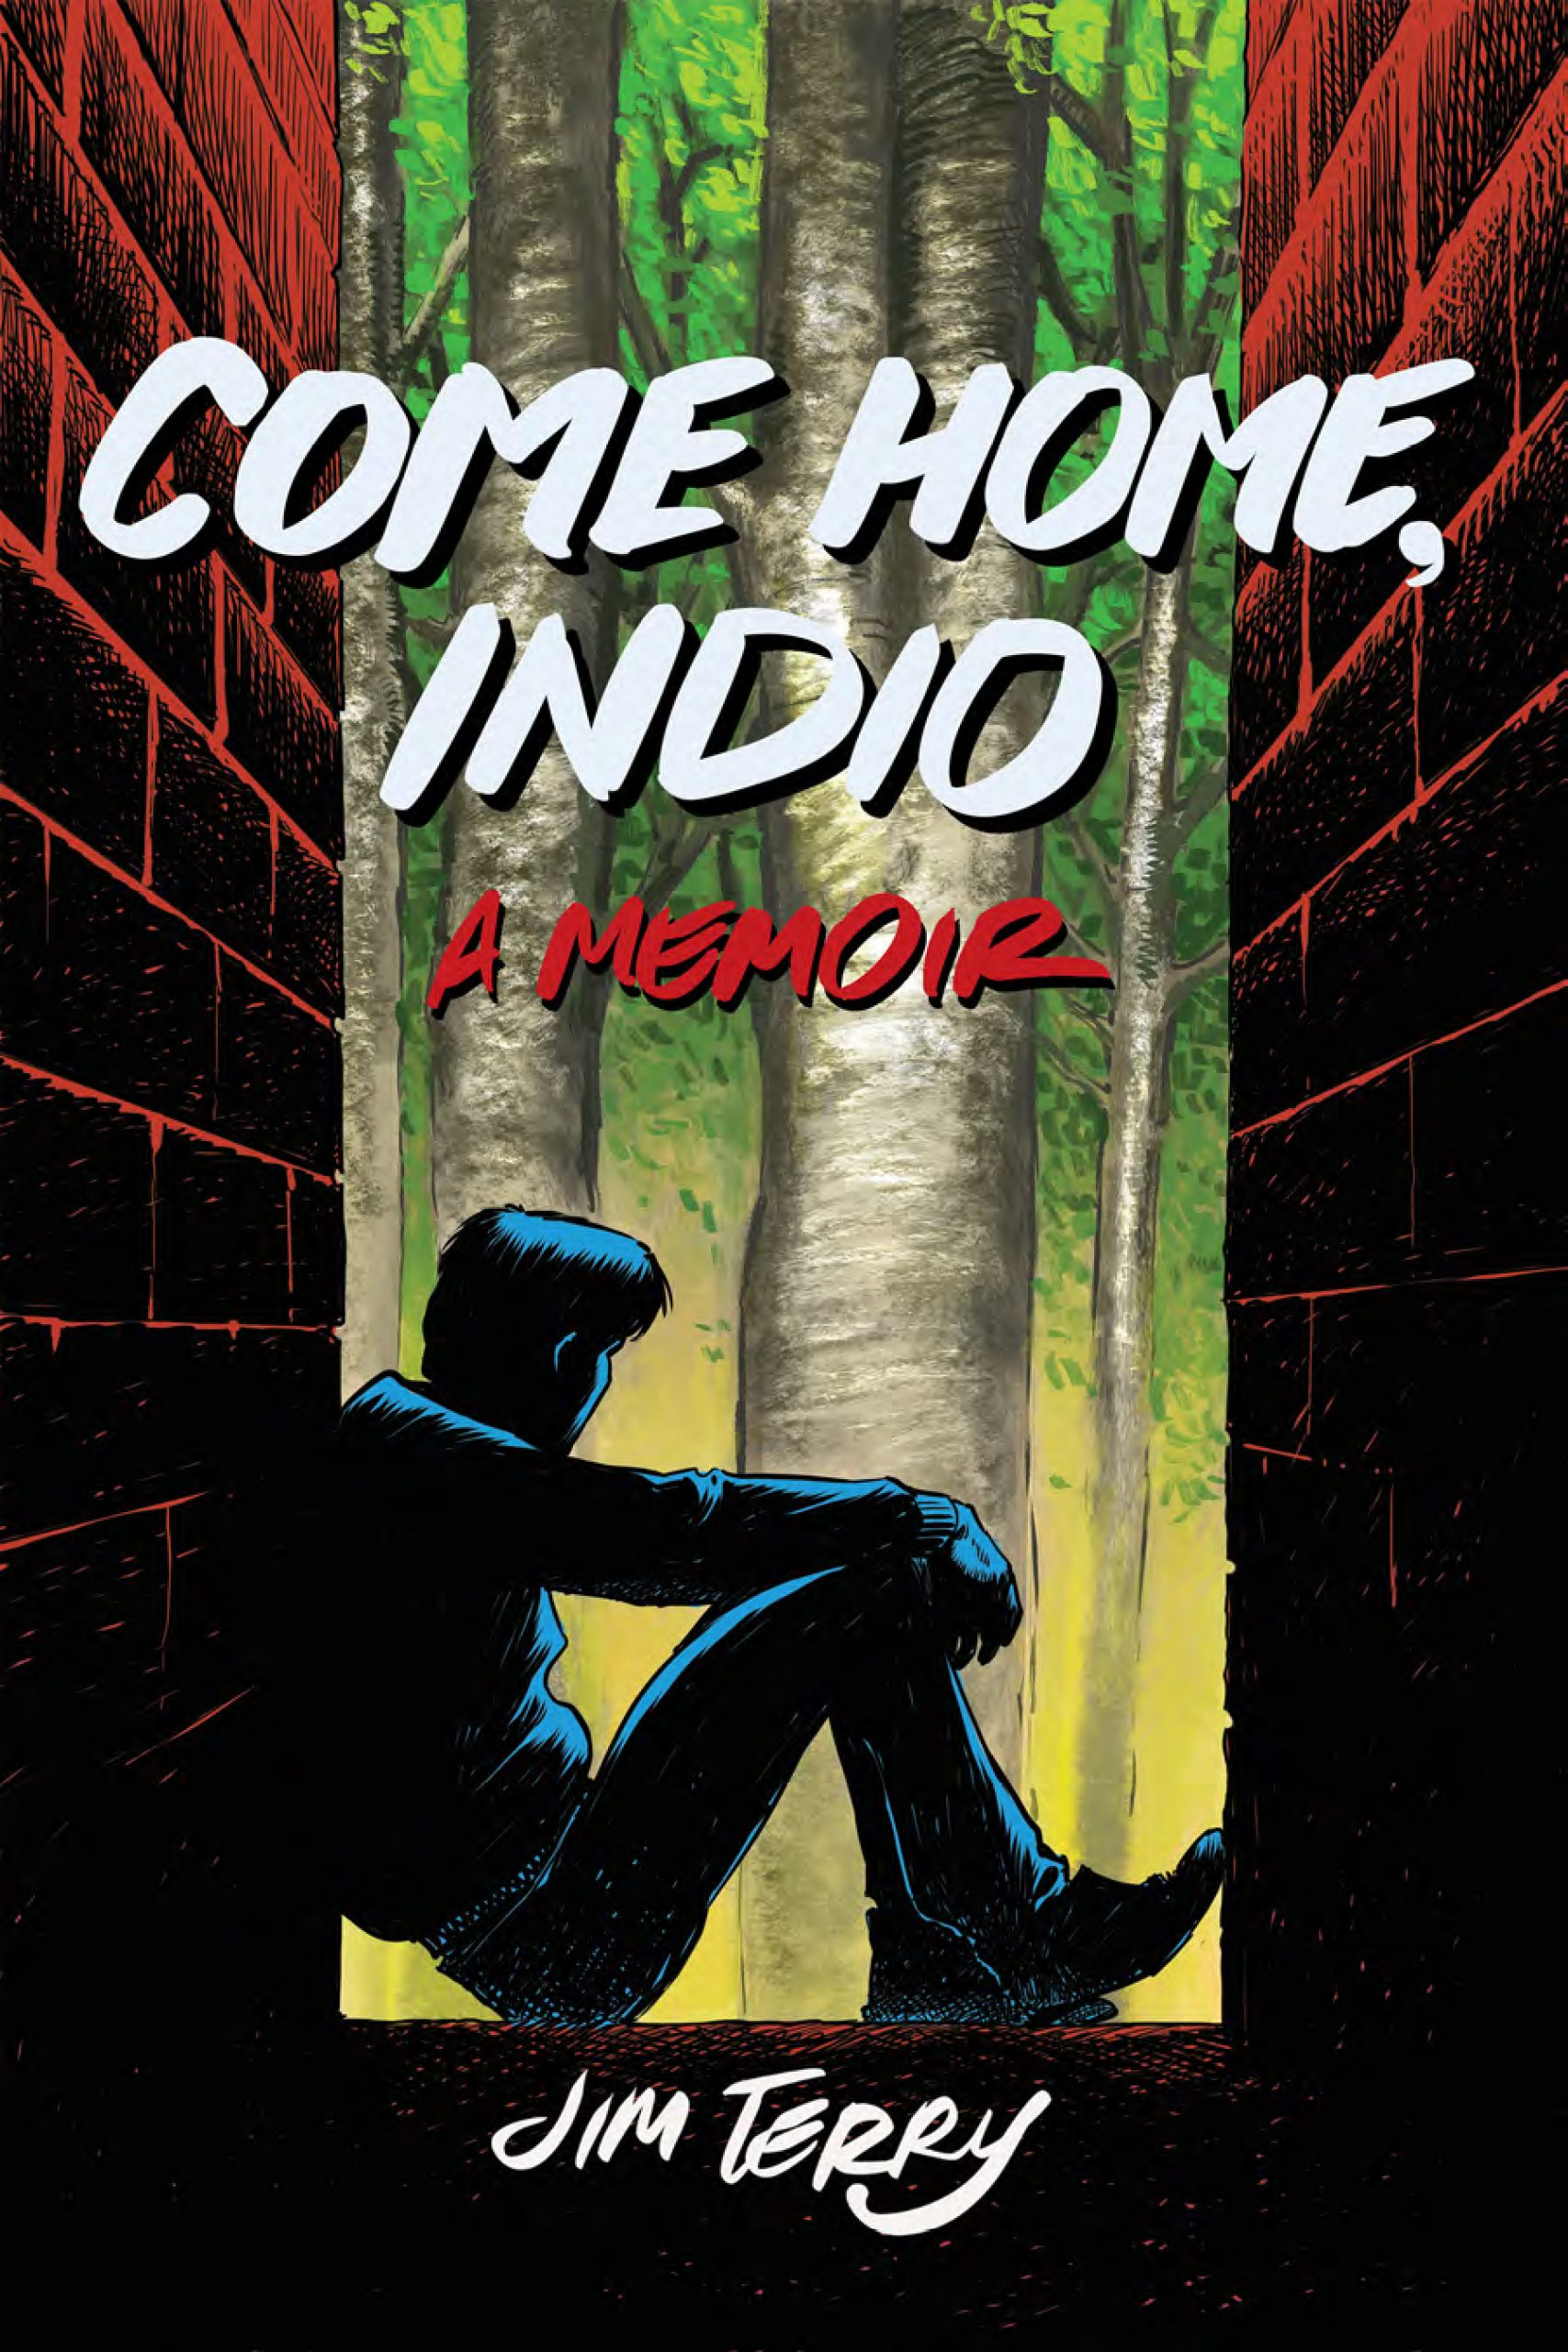 Come Home, Indio: A Memoir Book Cover